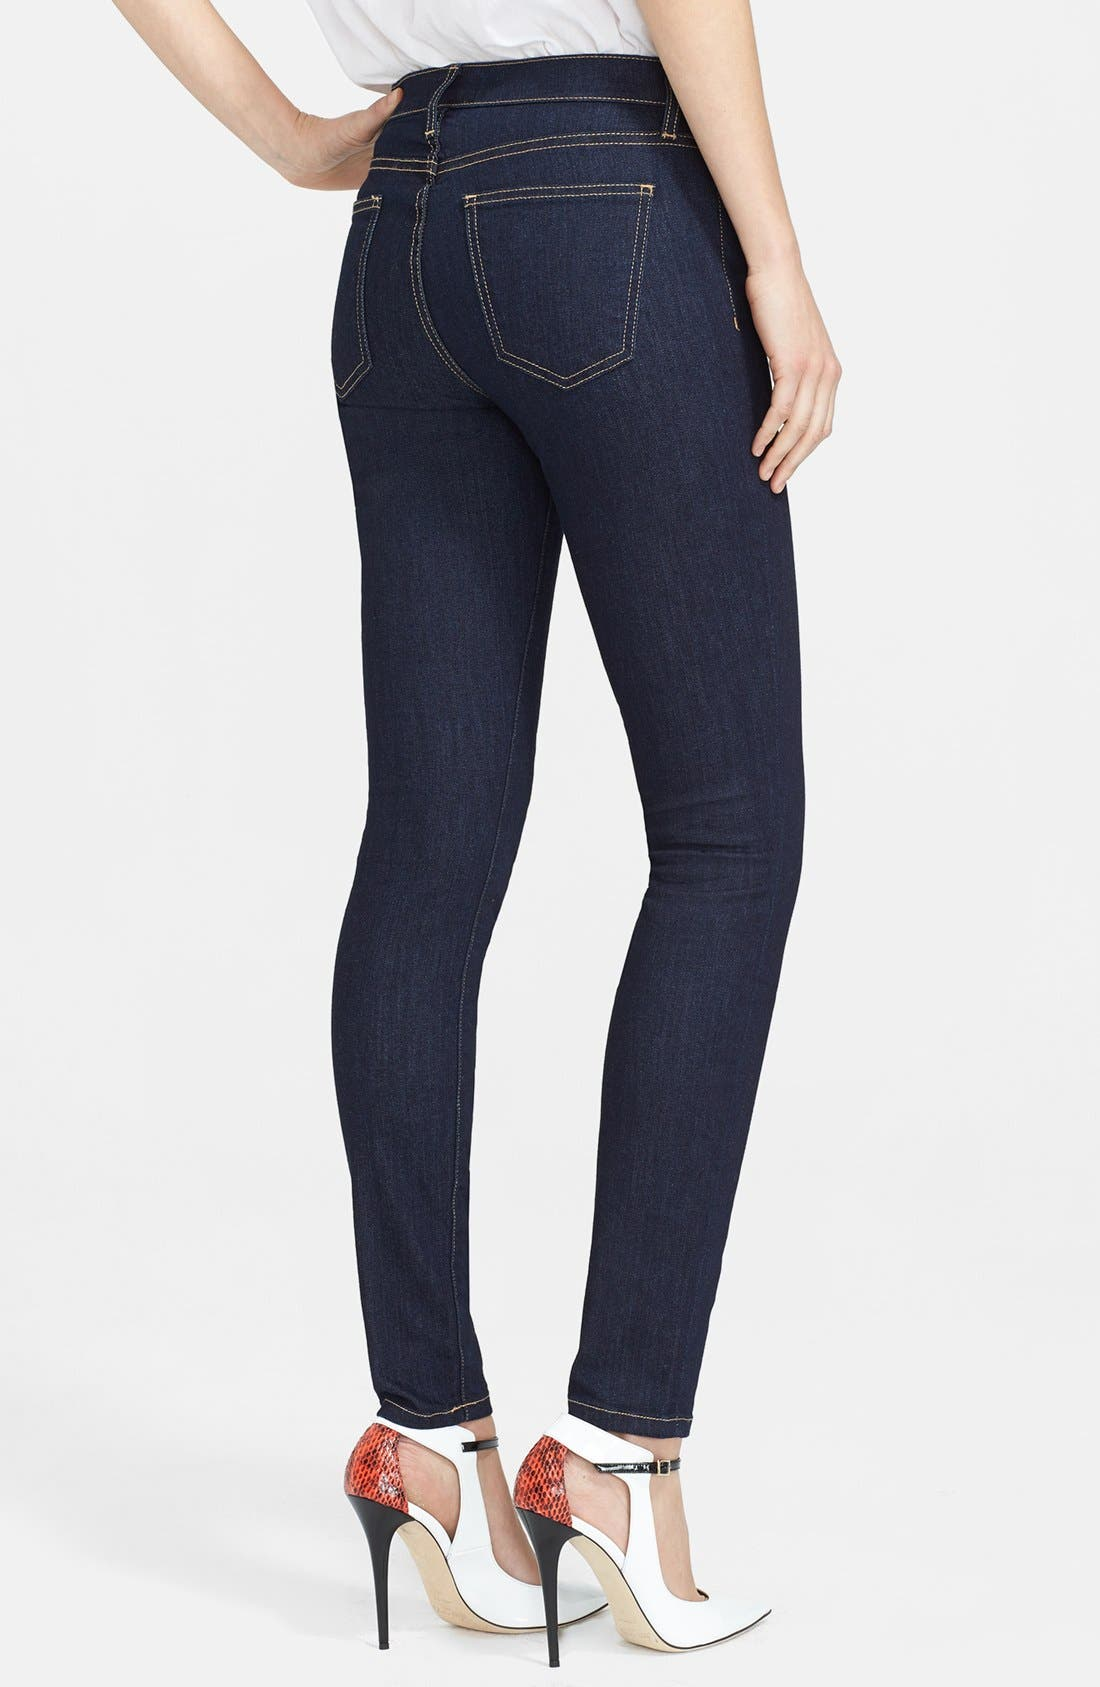 Alternate Image 2  - Current/Elliott 'The High Waist' Skinny Jeans (Rinse) (Nordstrom Exclusive)